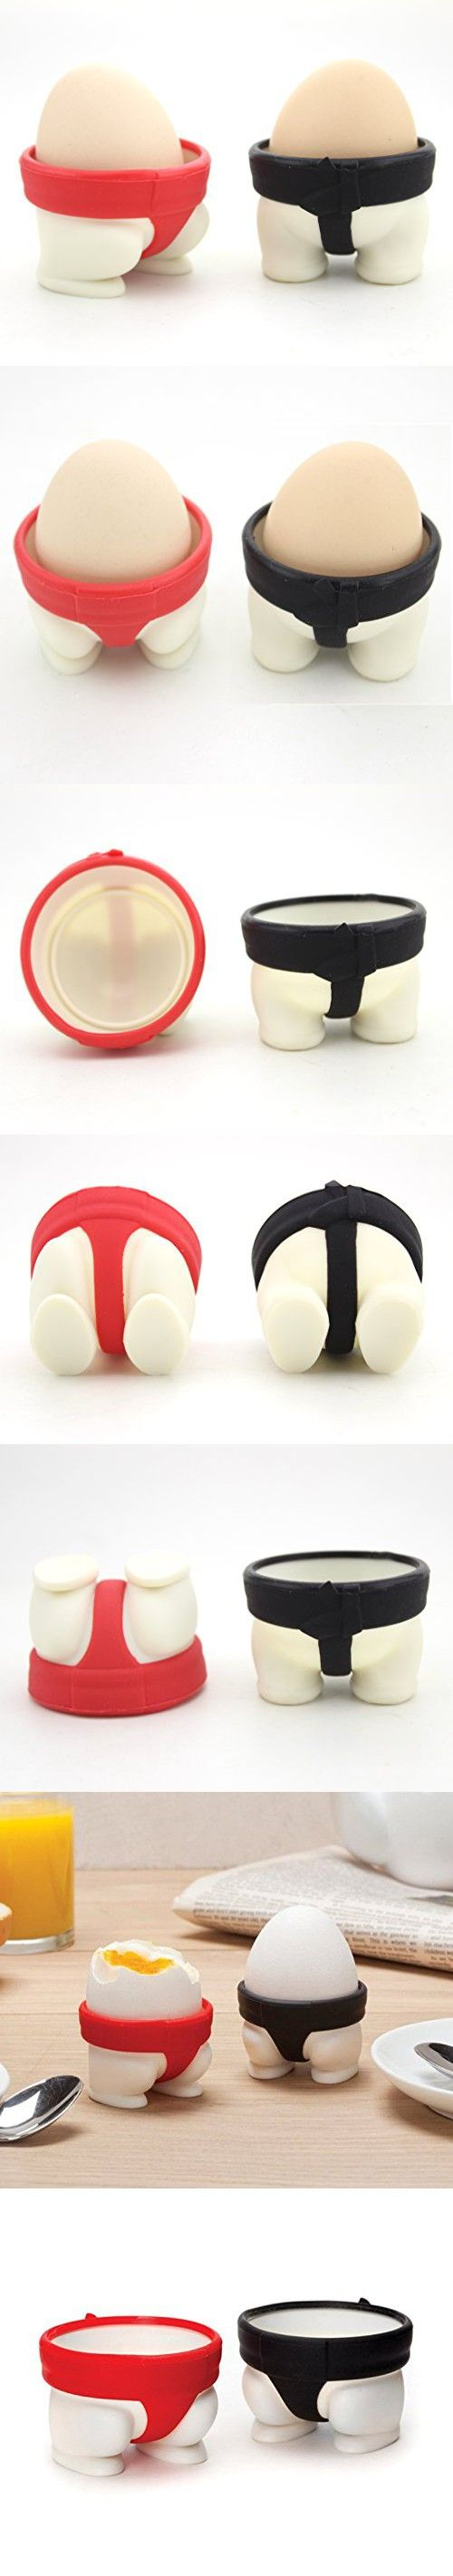 Set of 2 - ZICOME Creative Design Sumo Eggs Egg Cups (Black & Red) - More Fun for your Kitchen